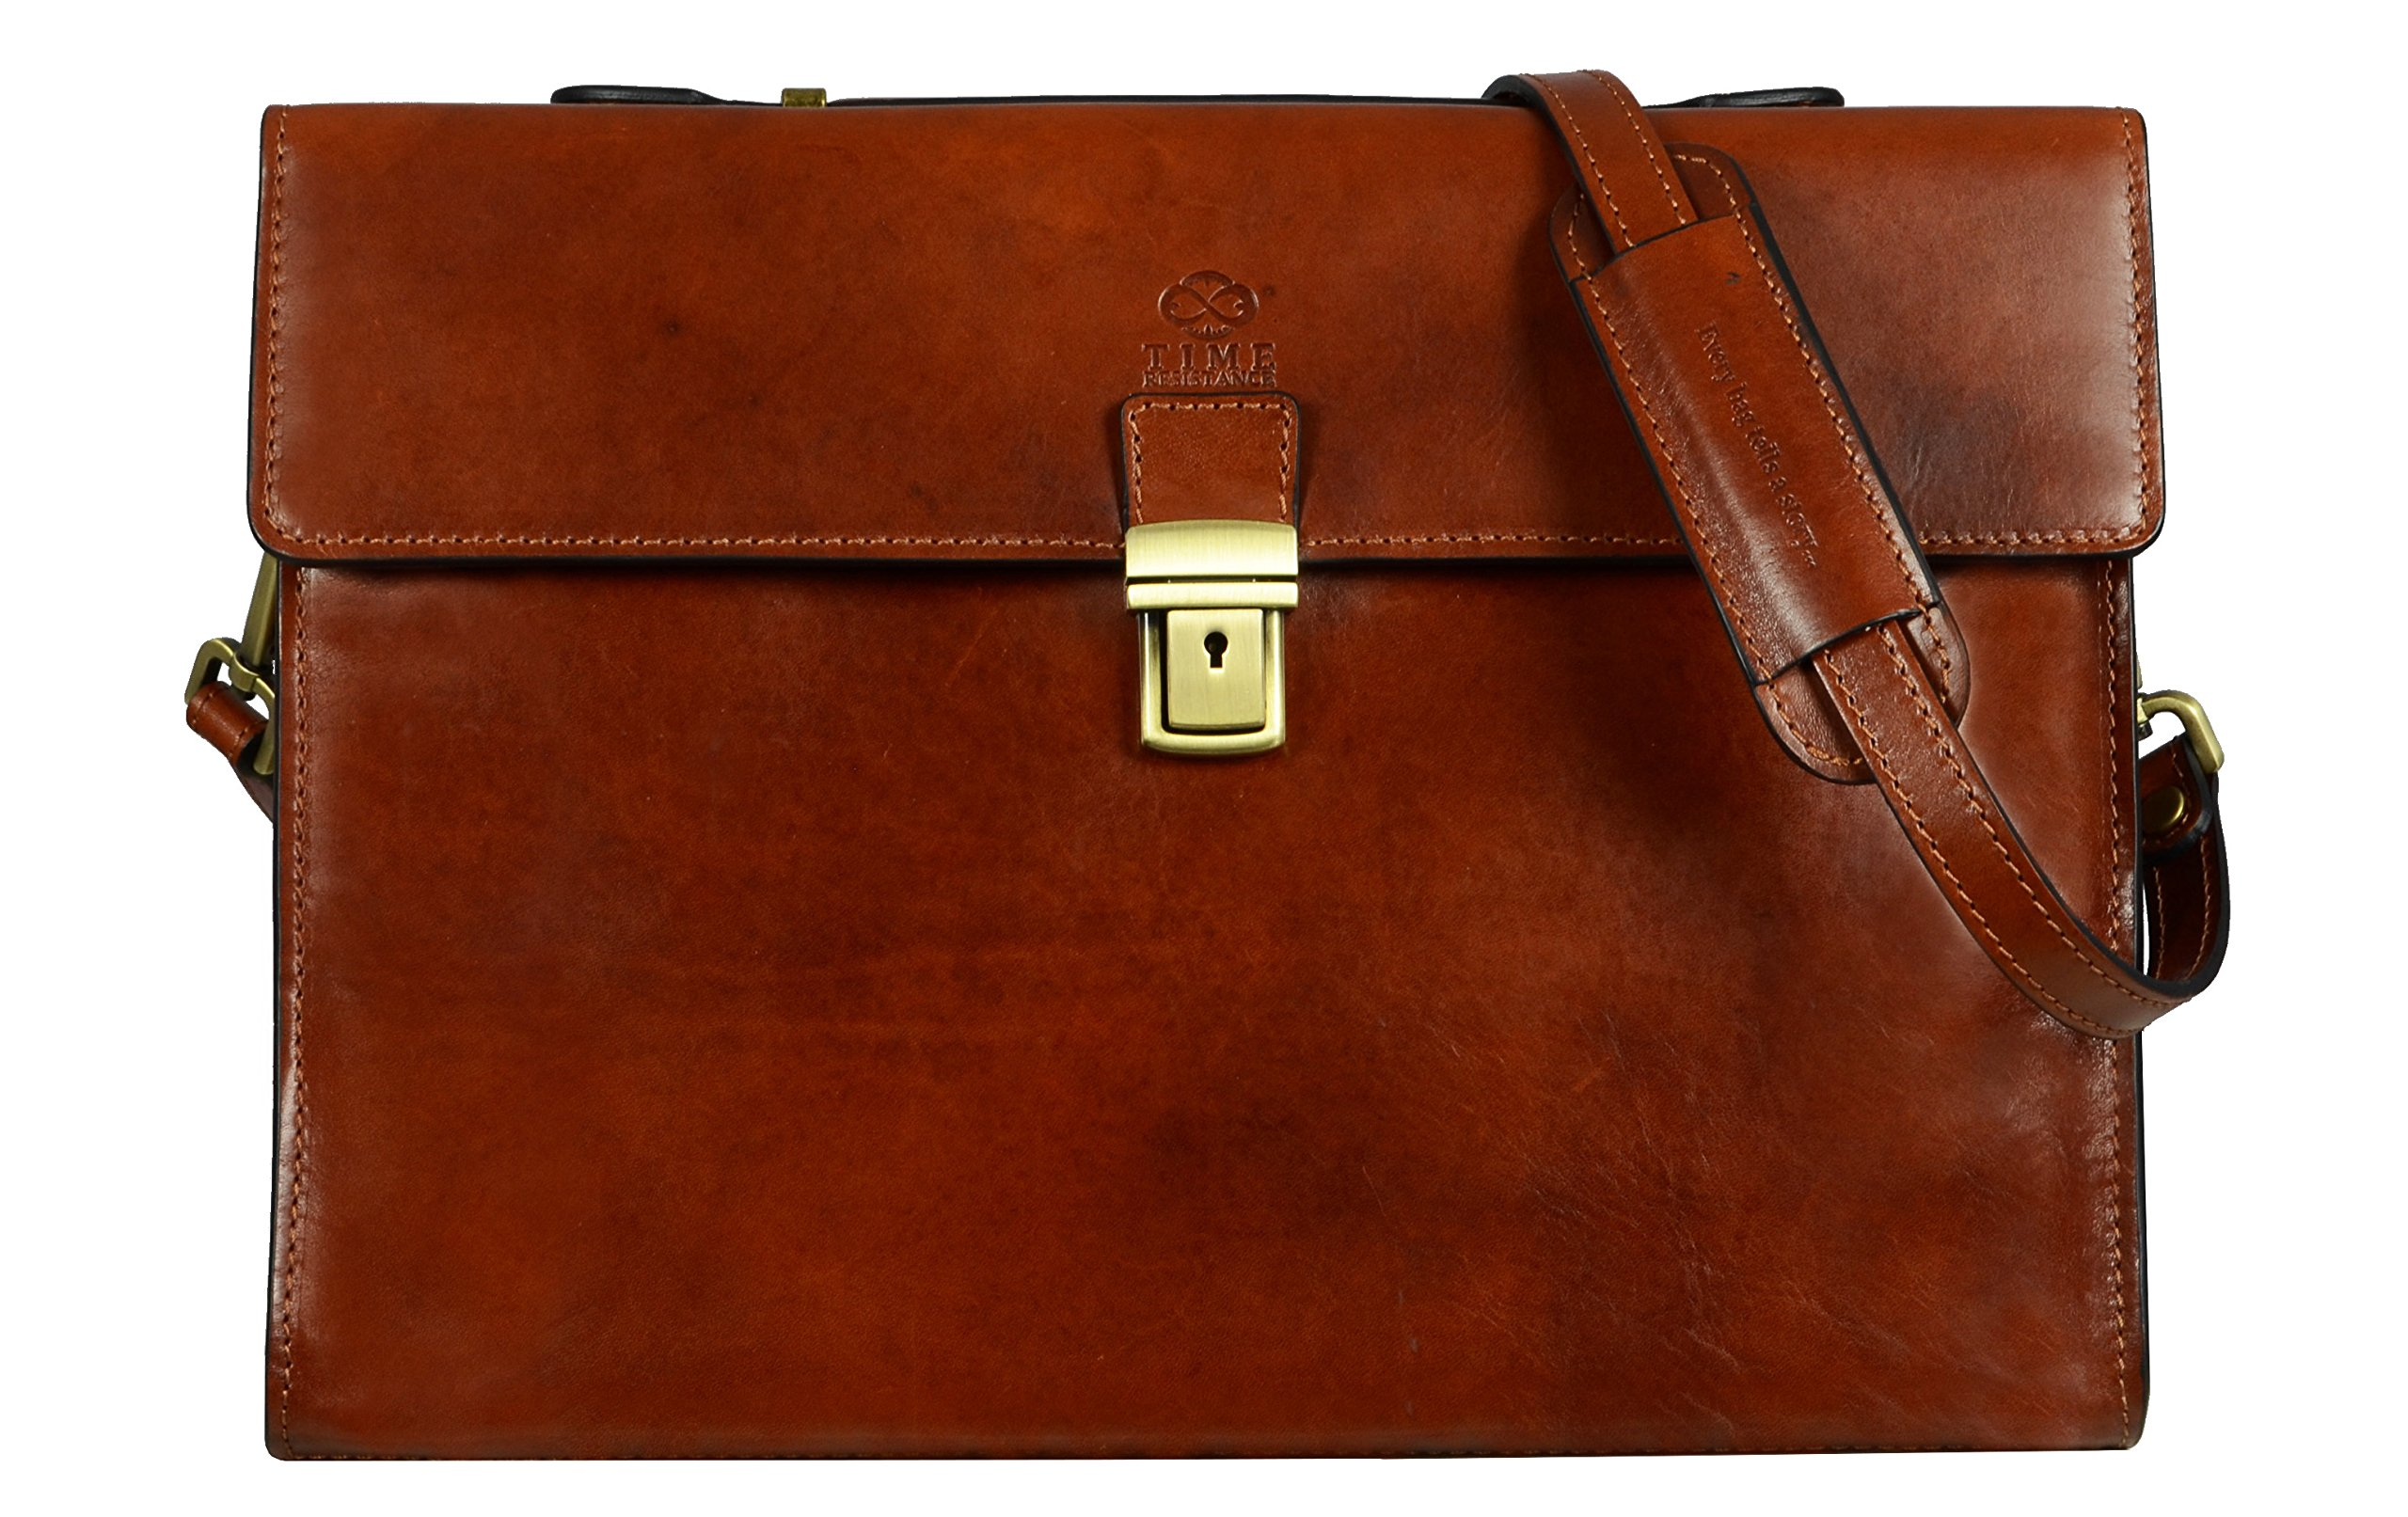 Leather Briefcase, Handmade, Attache, Messenger Bag, Unisex, Medium, Best Amber Color - Time Resistance